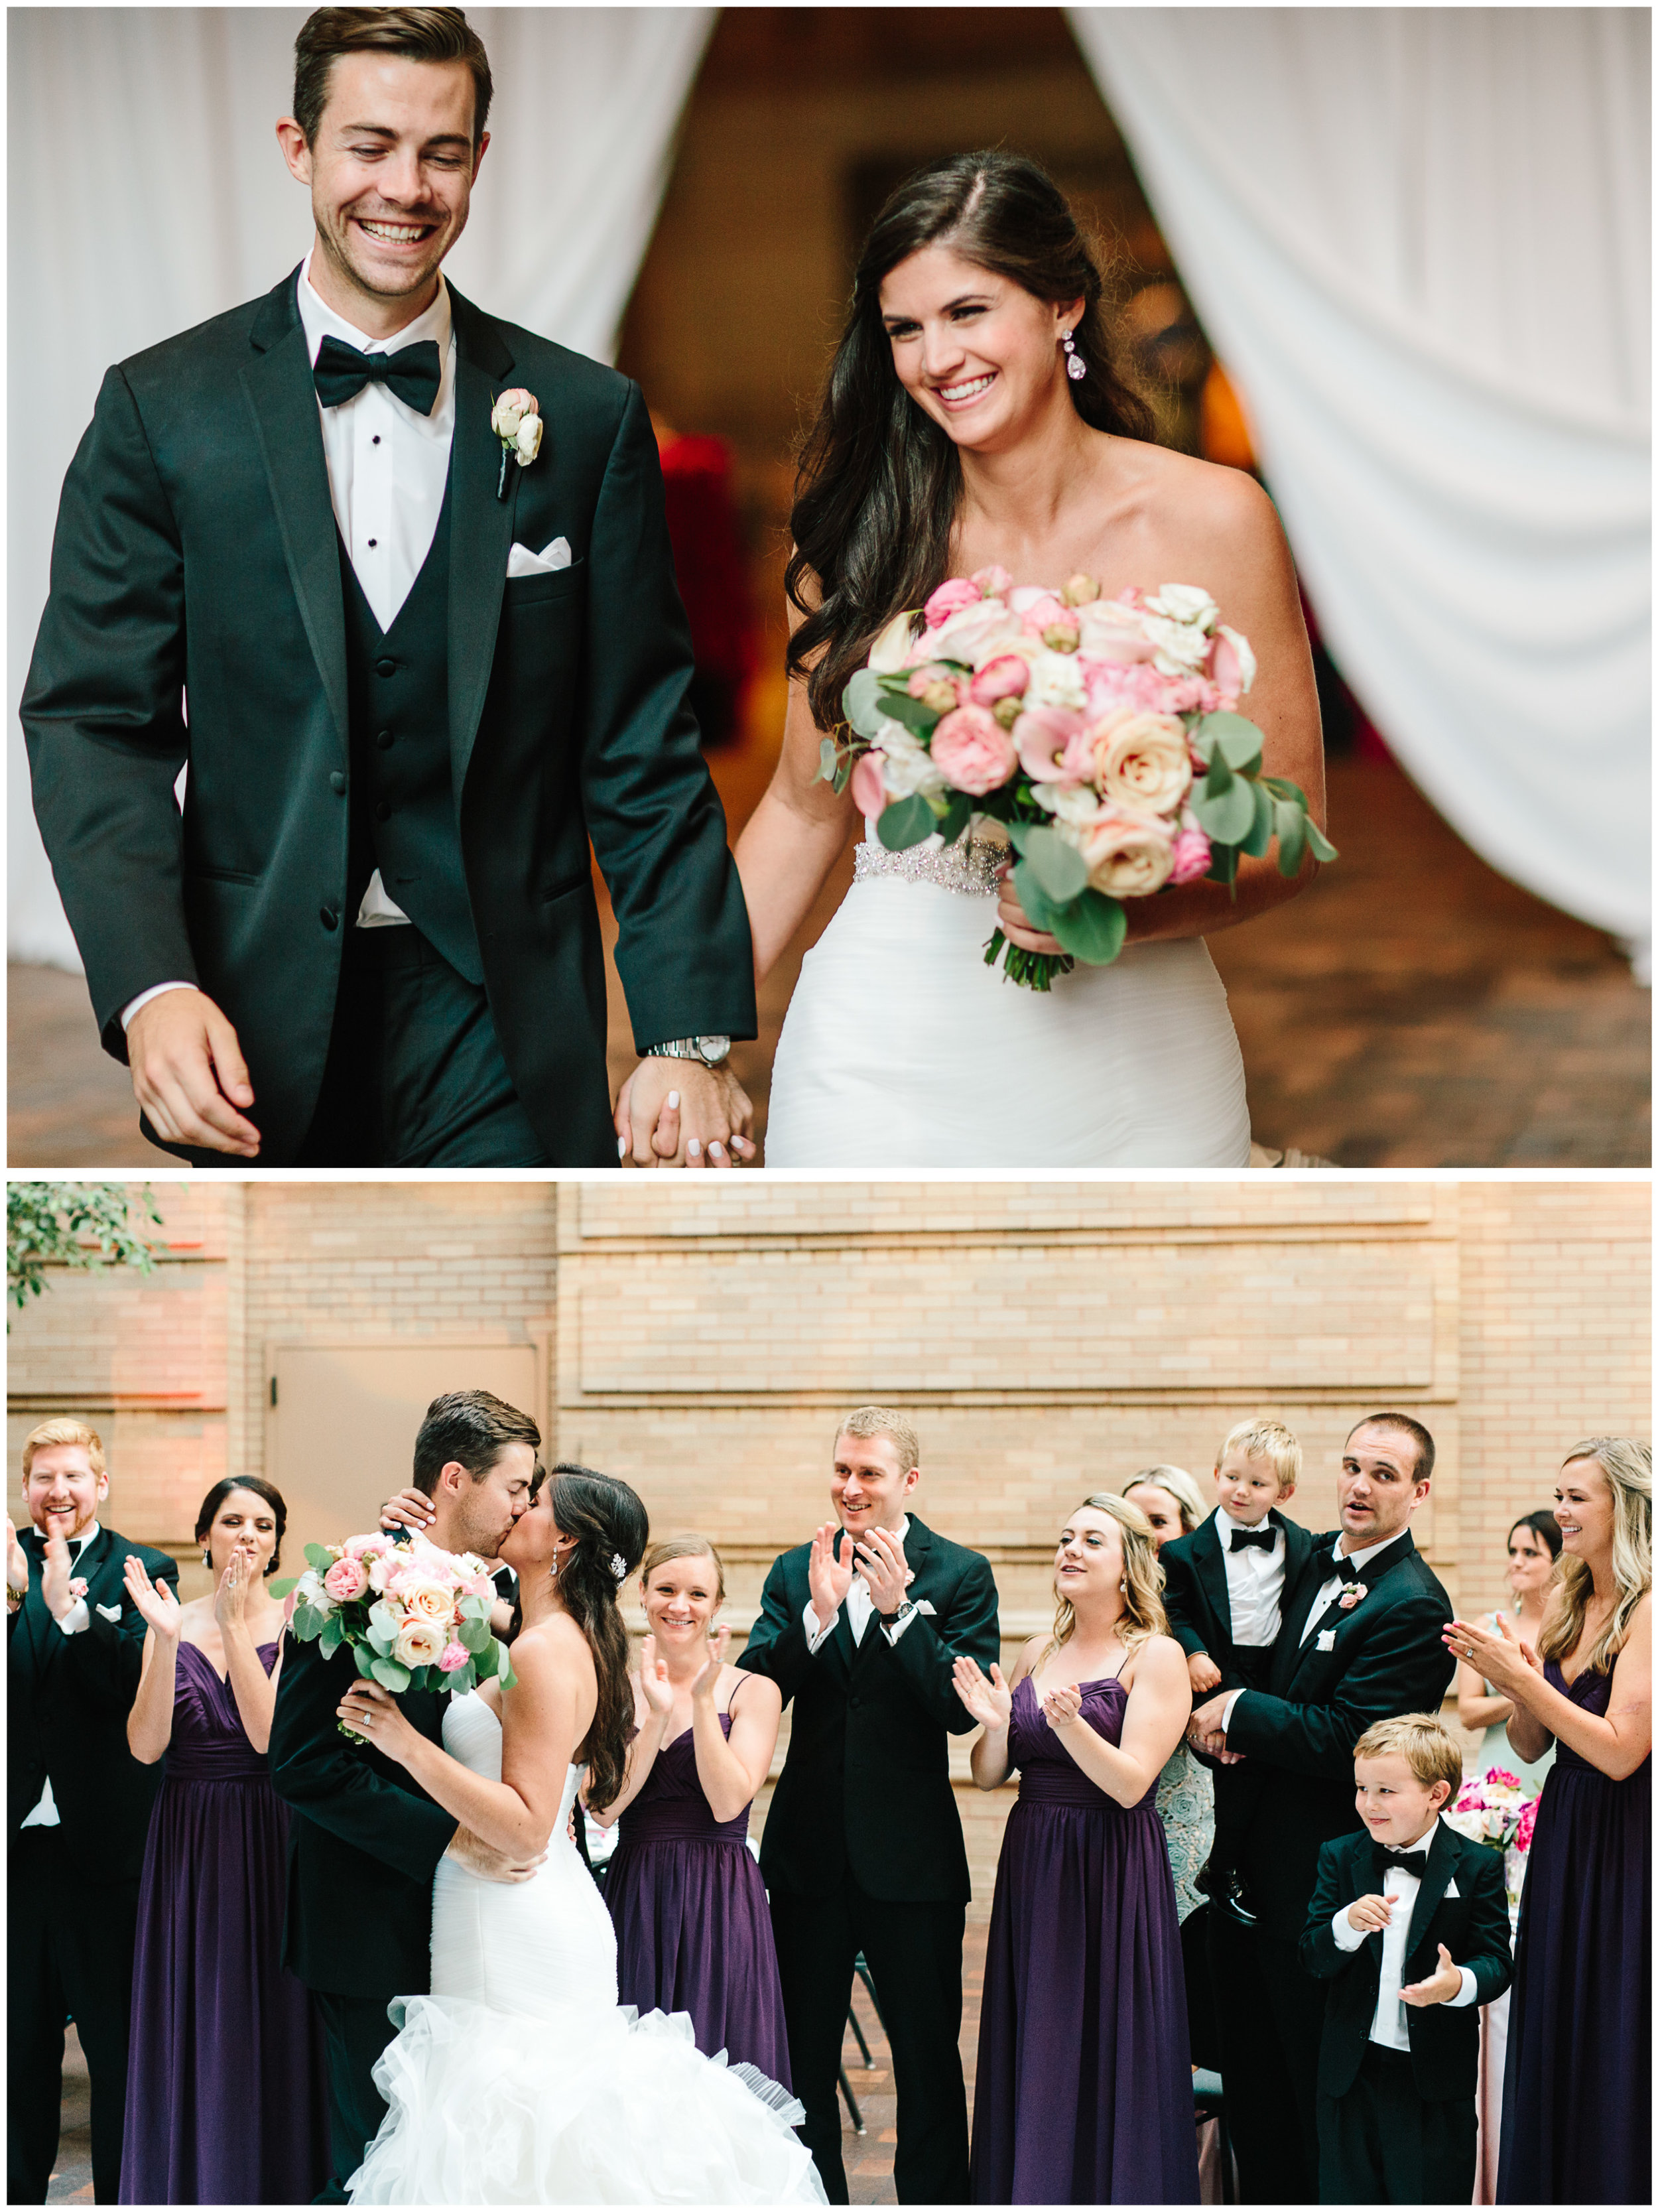 downtown_denver_wedding_62.jpg